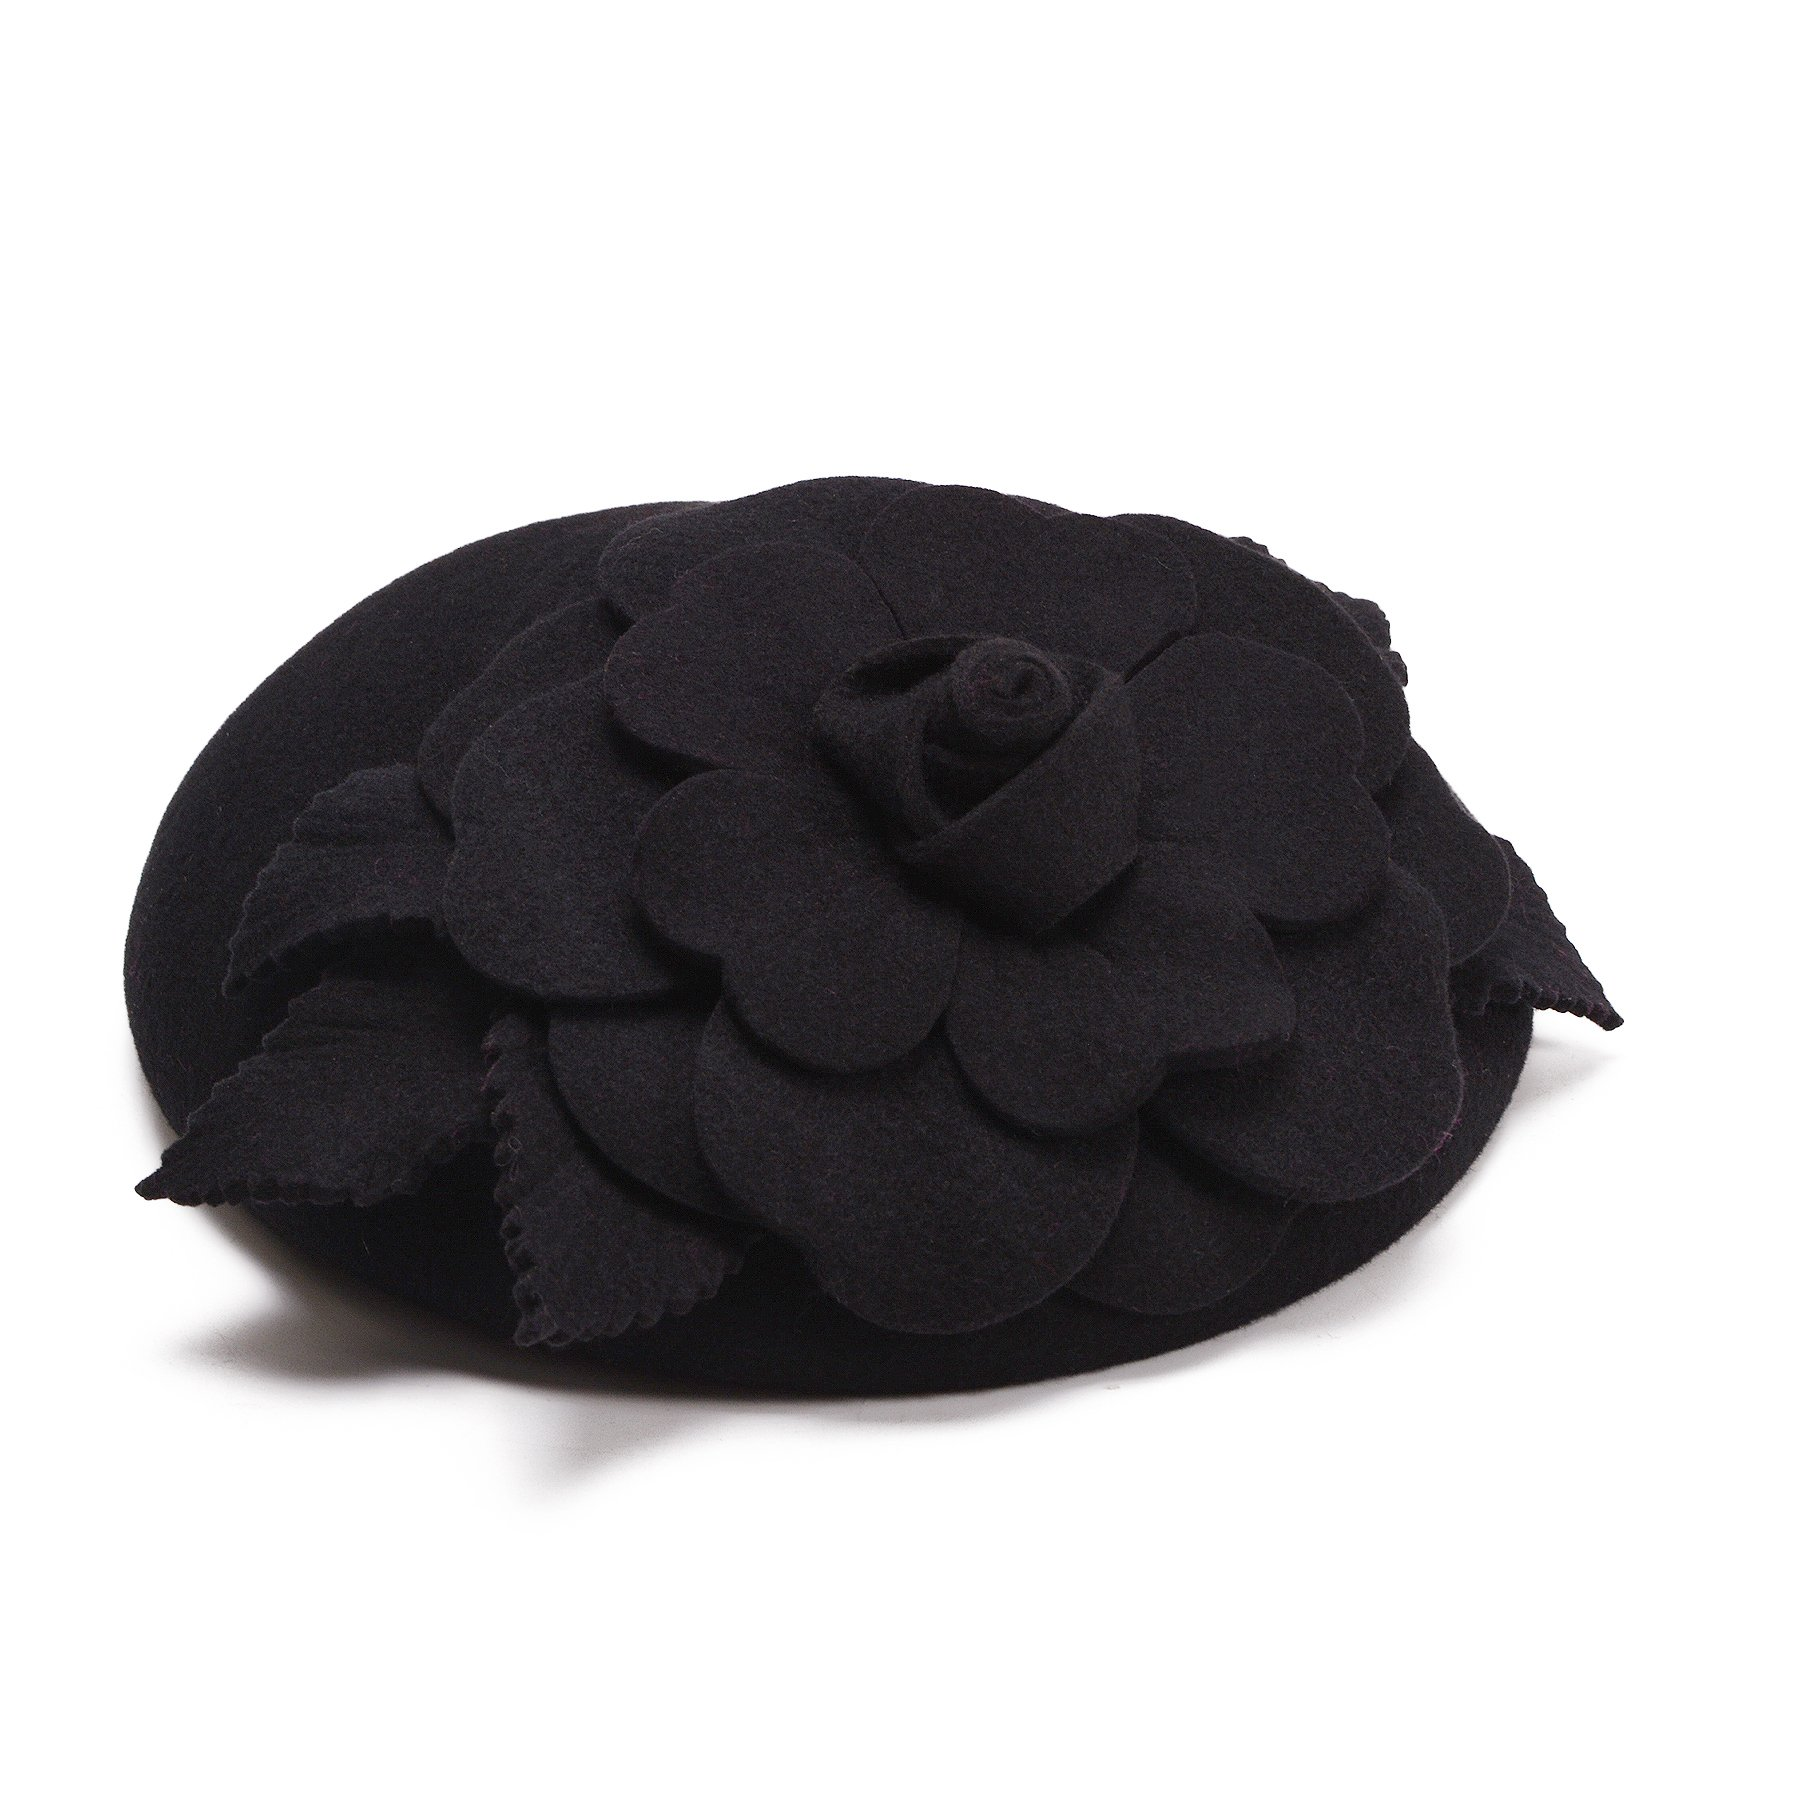 Flower Womens Dress Fascinator Wool Pillbox Hat Party Wedding A083 (Black) by Lawliet